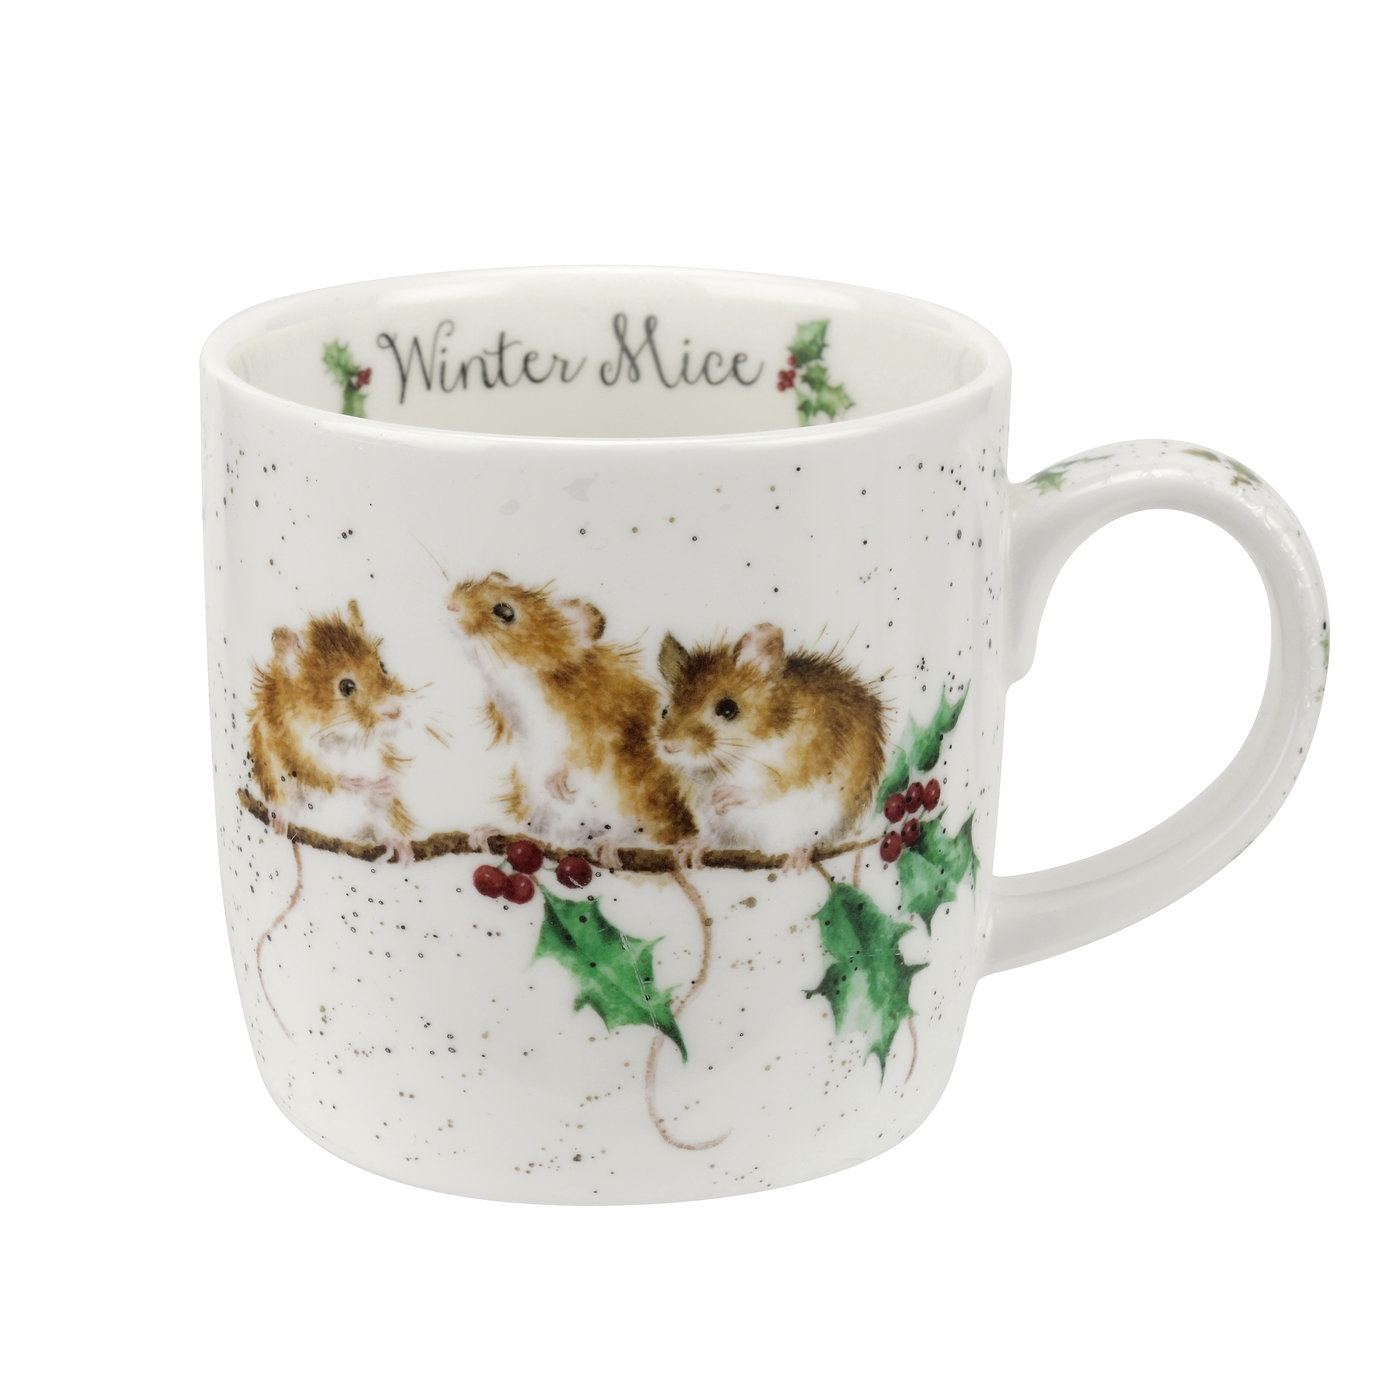 Royal Worcester Wrendale Designs Winter Mice 11 oz Mug image number 0